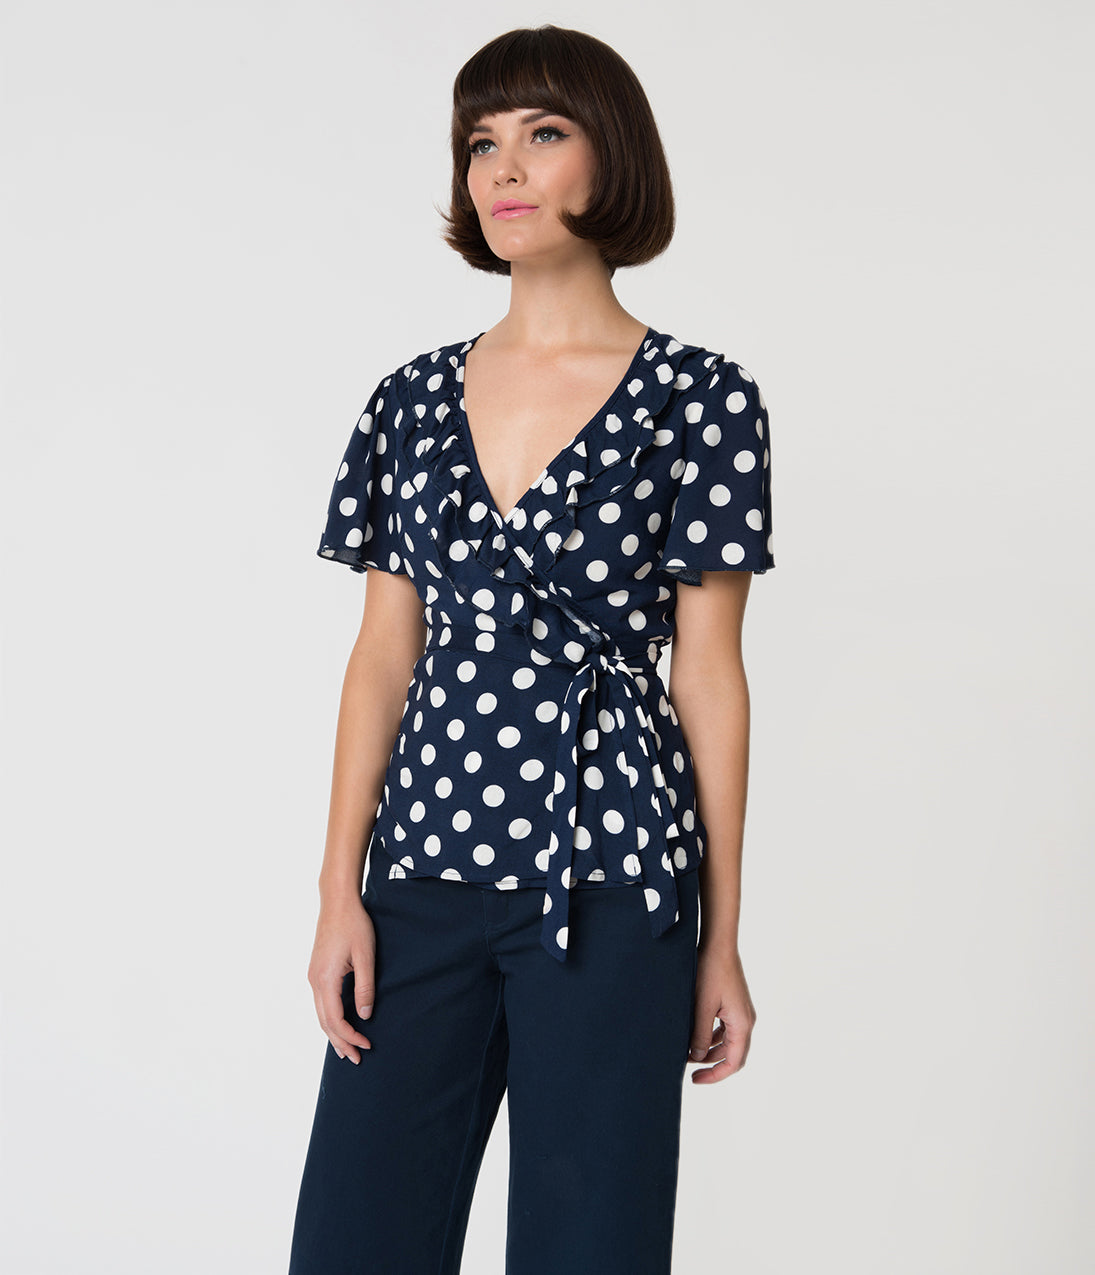 Vintage & Retro Shirts, Halter Tops, Blouses Retro Style Navy Blue  White Polka Dot Ruffled Short Sleeve Wrap Blouse $26.00 AT vintagedancer.com